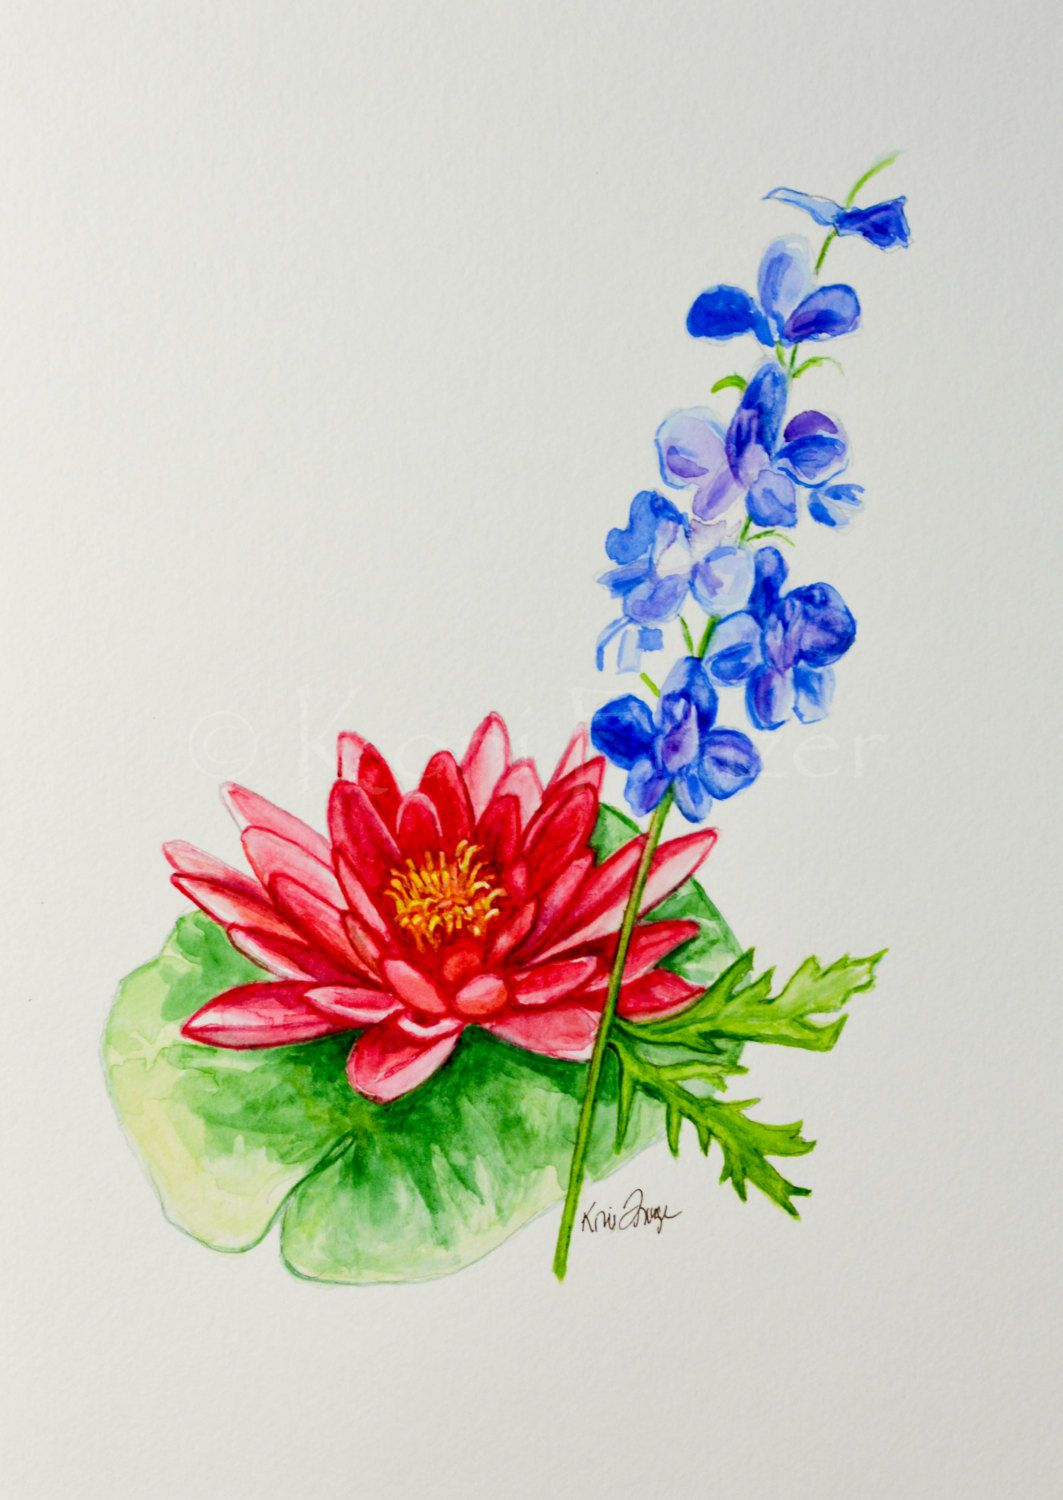 Water lily and Larkspur July birthday flower, original